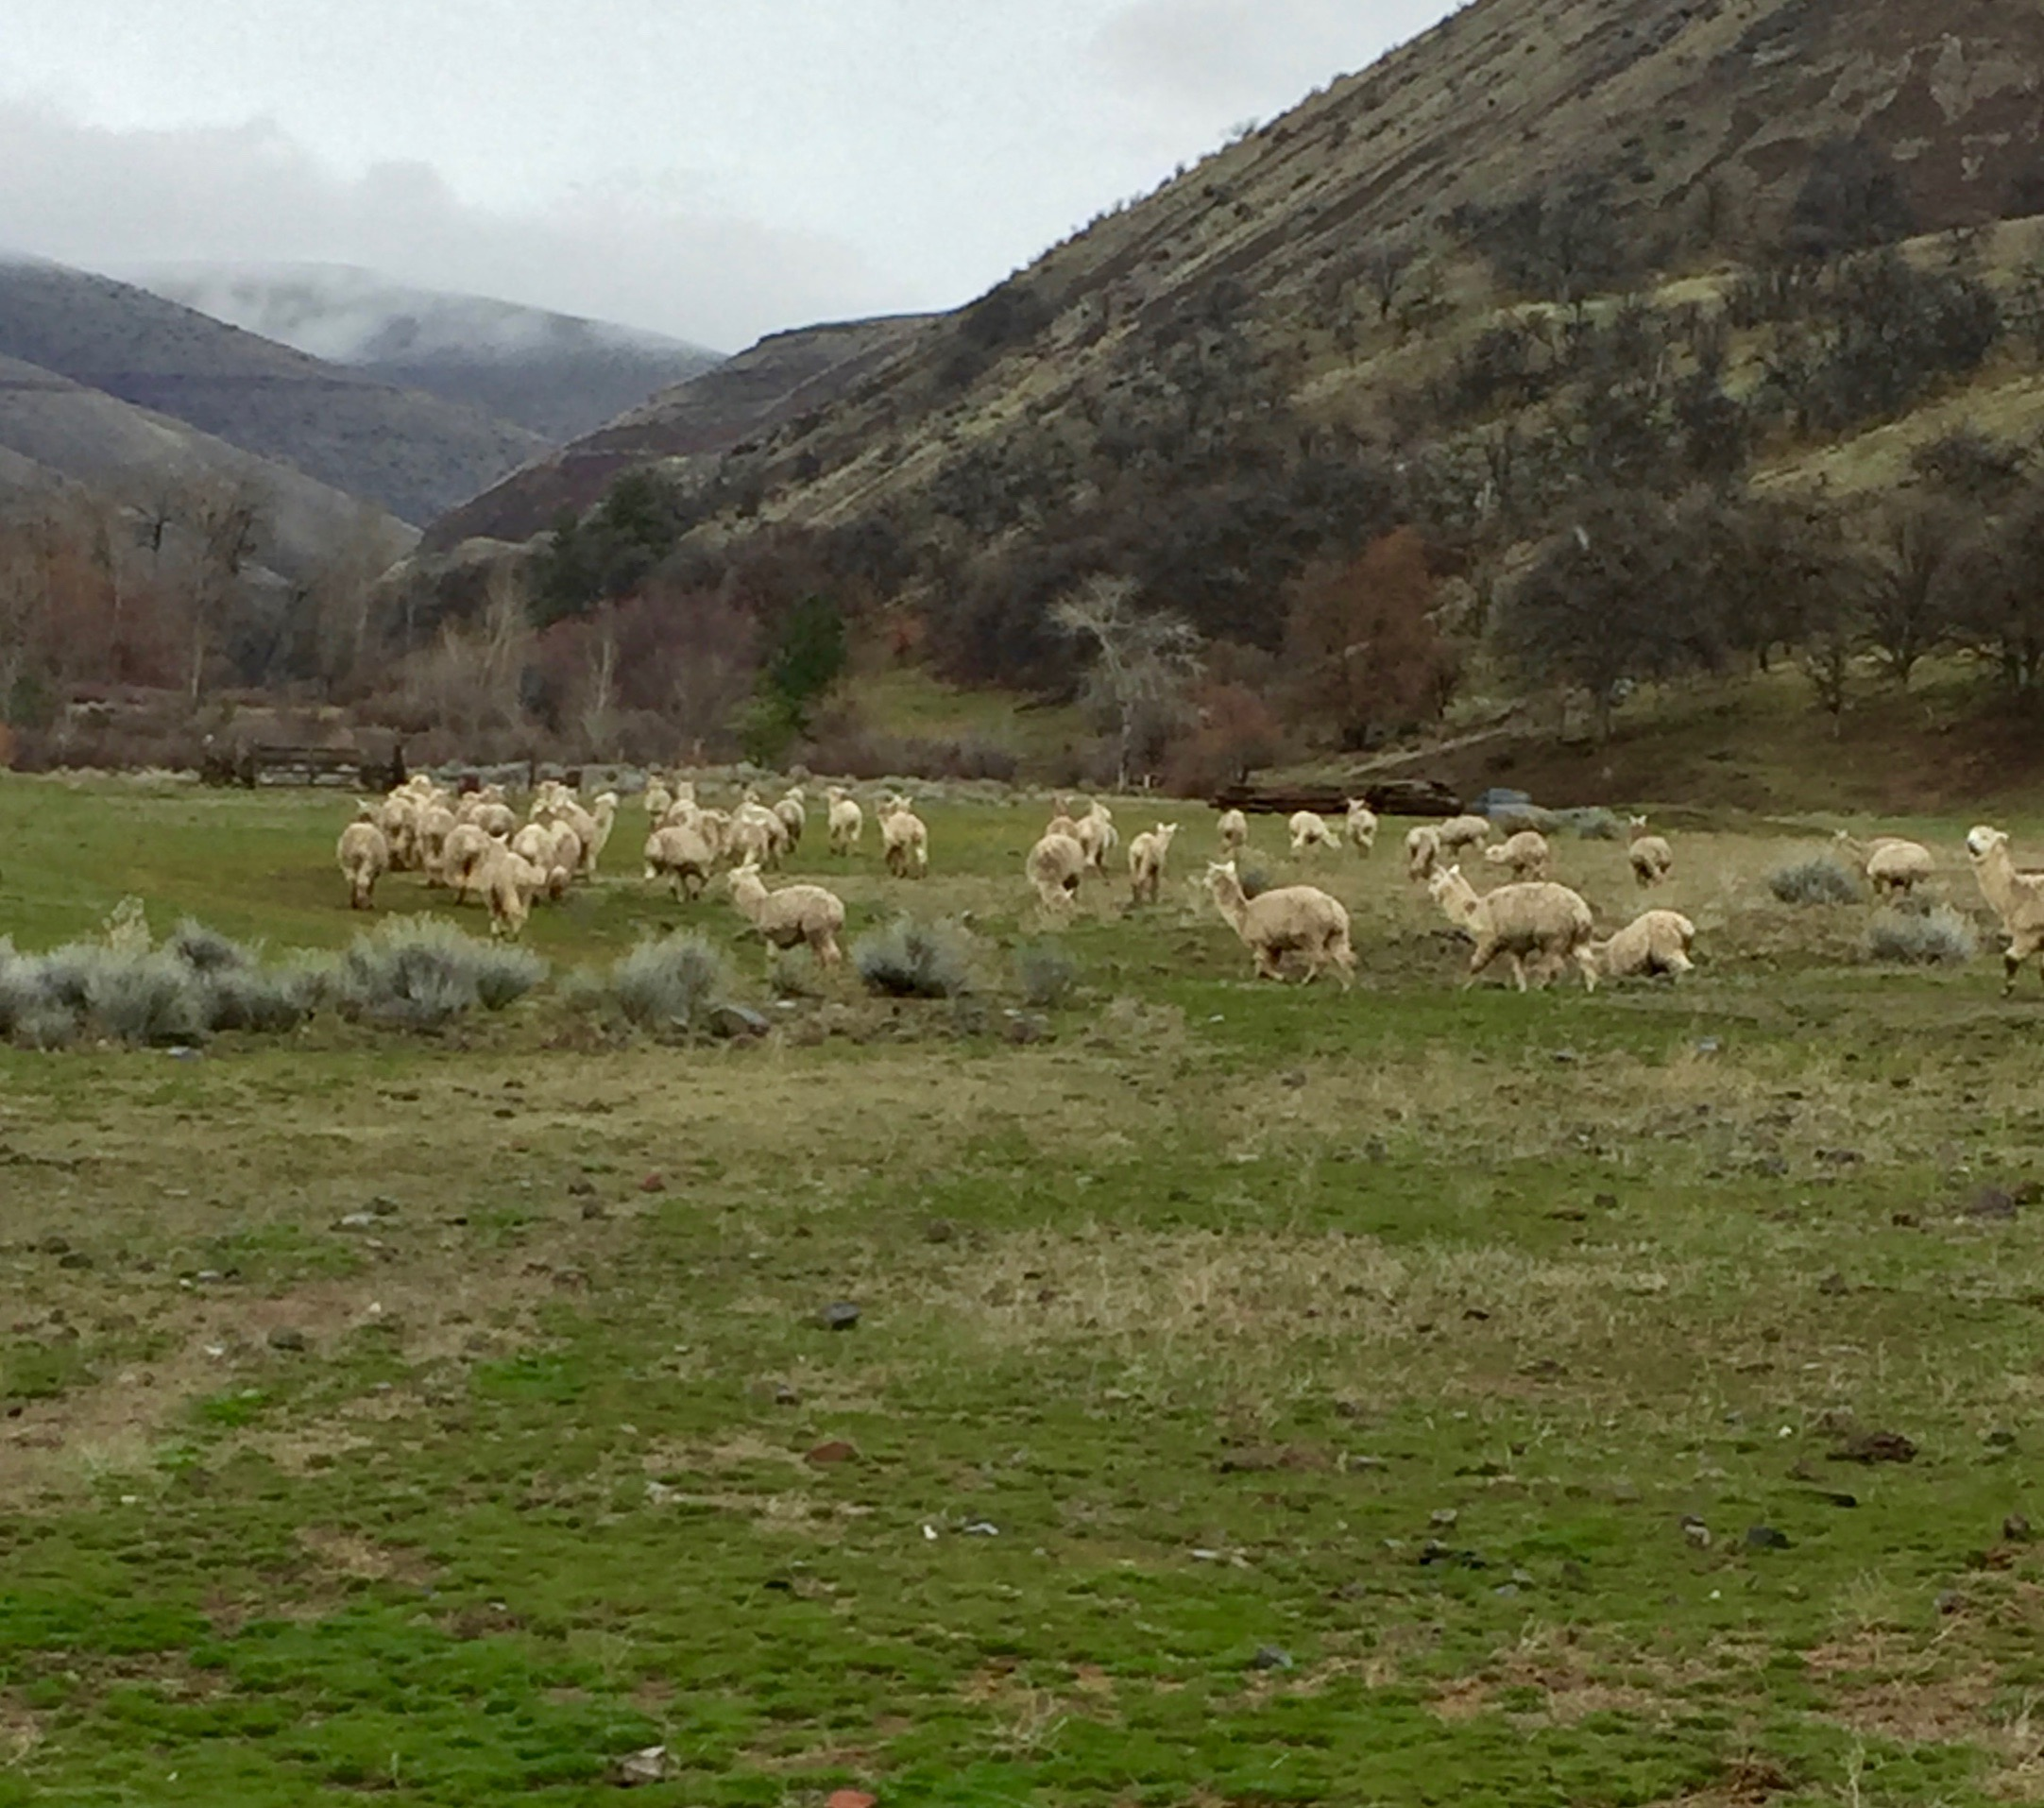 Late winter on the ranch... Looks like the Altiplano...